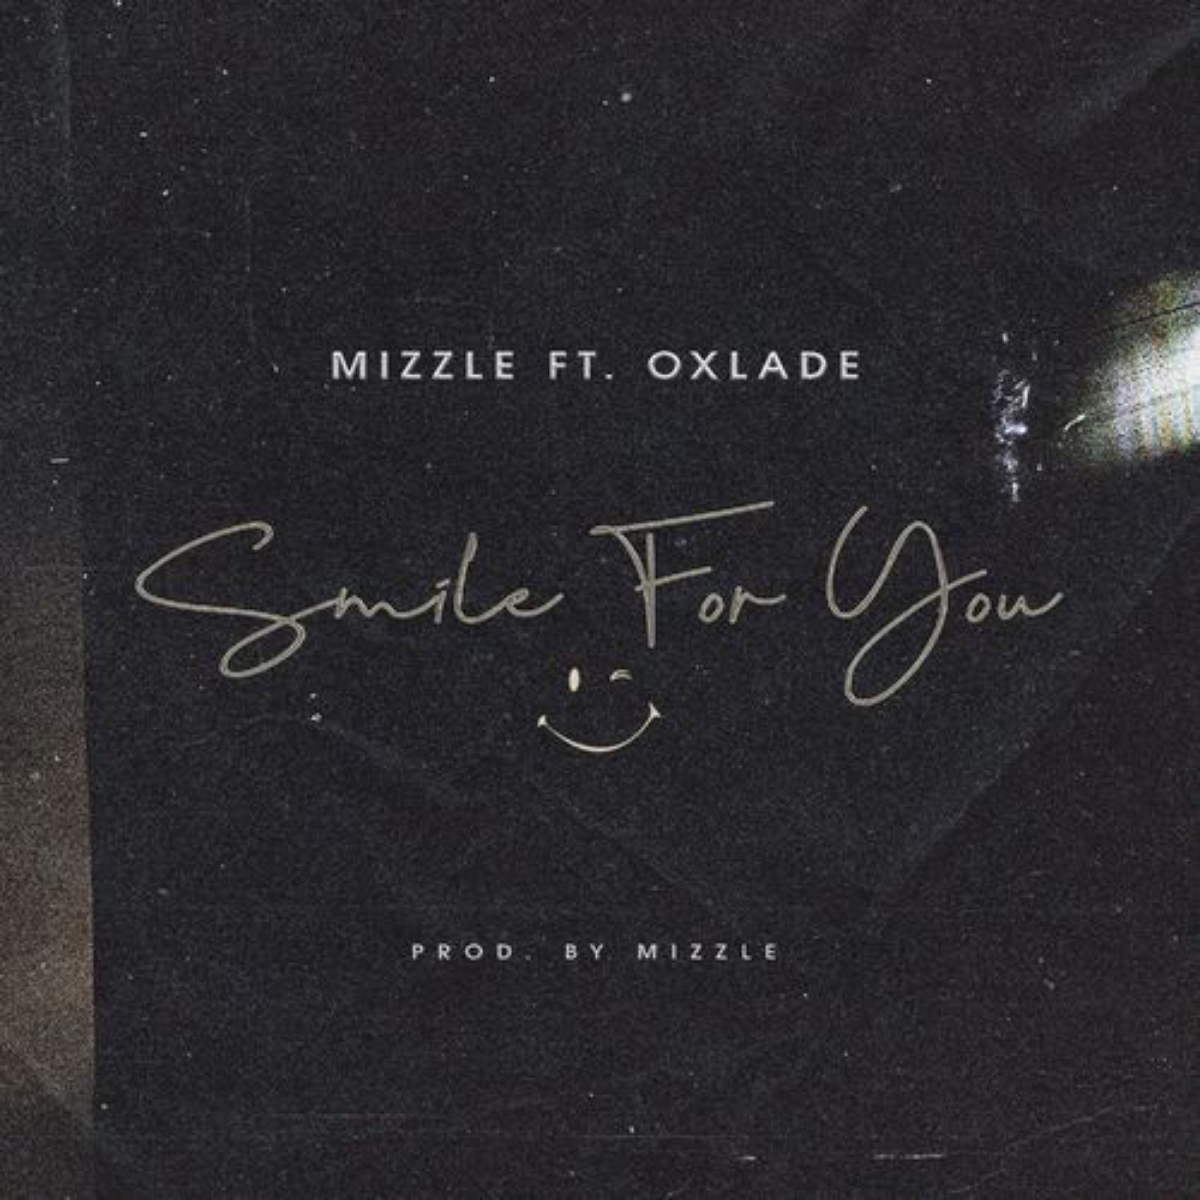 Mizzle ft. Oxlade - Smile For You